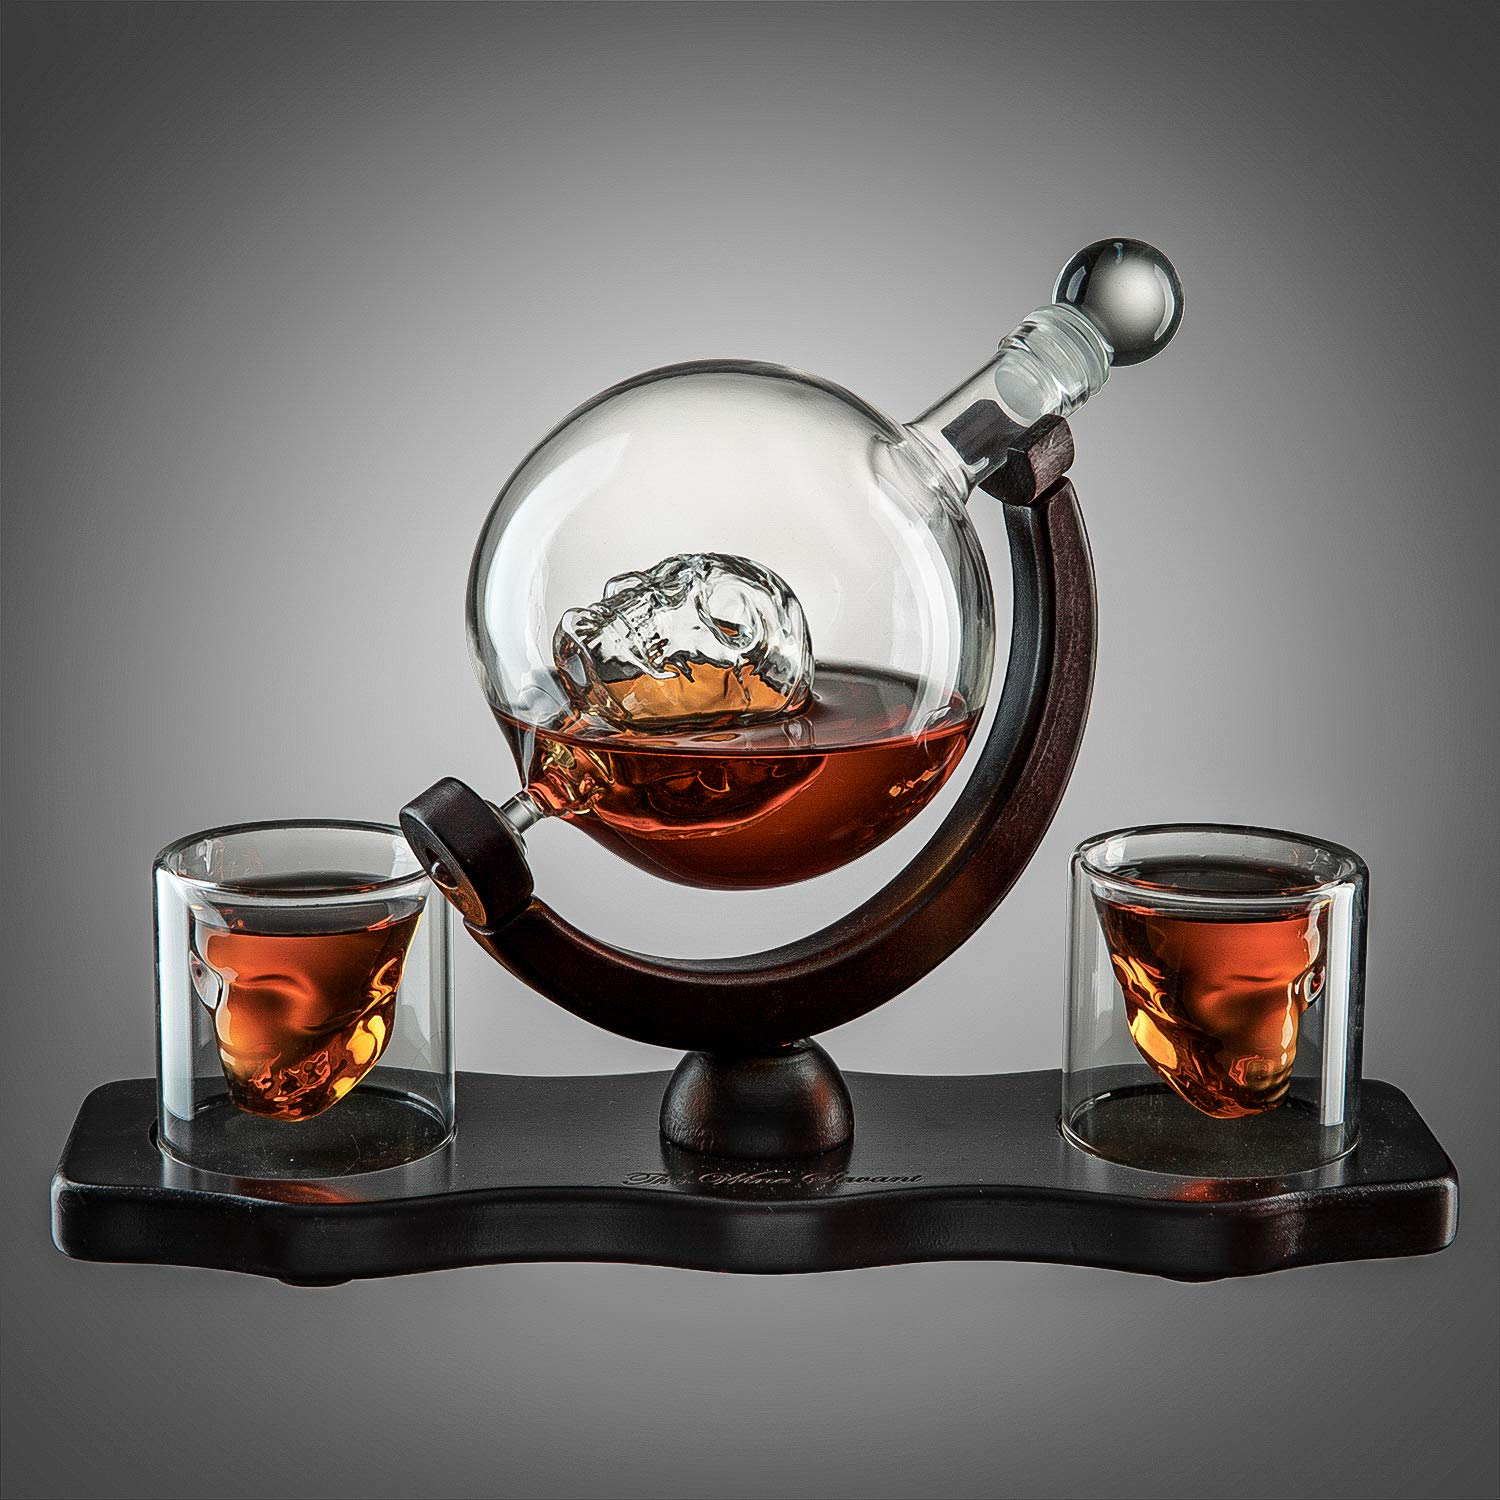 Skull Decanter Set With 2 Skull Shot Glasses - by The Wine Savant - and Beautiful Wooden Base - By Use Skull Head Cup For A Whiskey, Scotch and Vodka Shot Glass, 850ml Decanter 3 Ounces Shot Glass by The Wine Savant